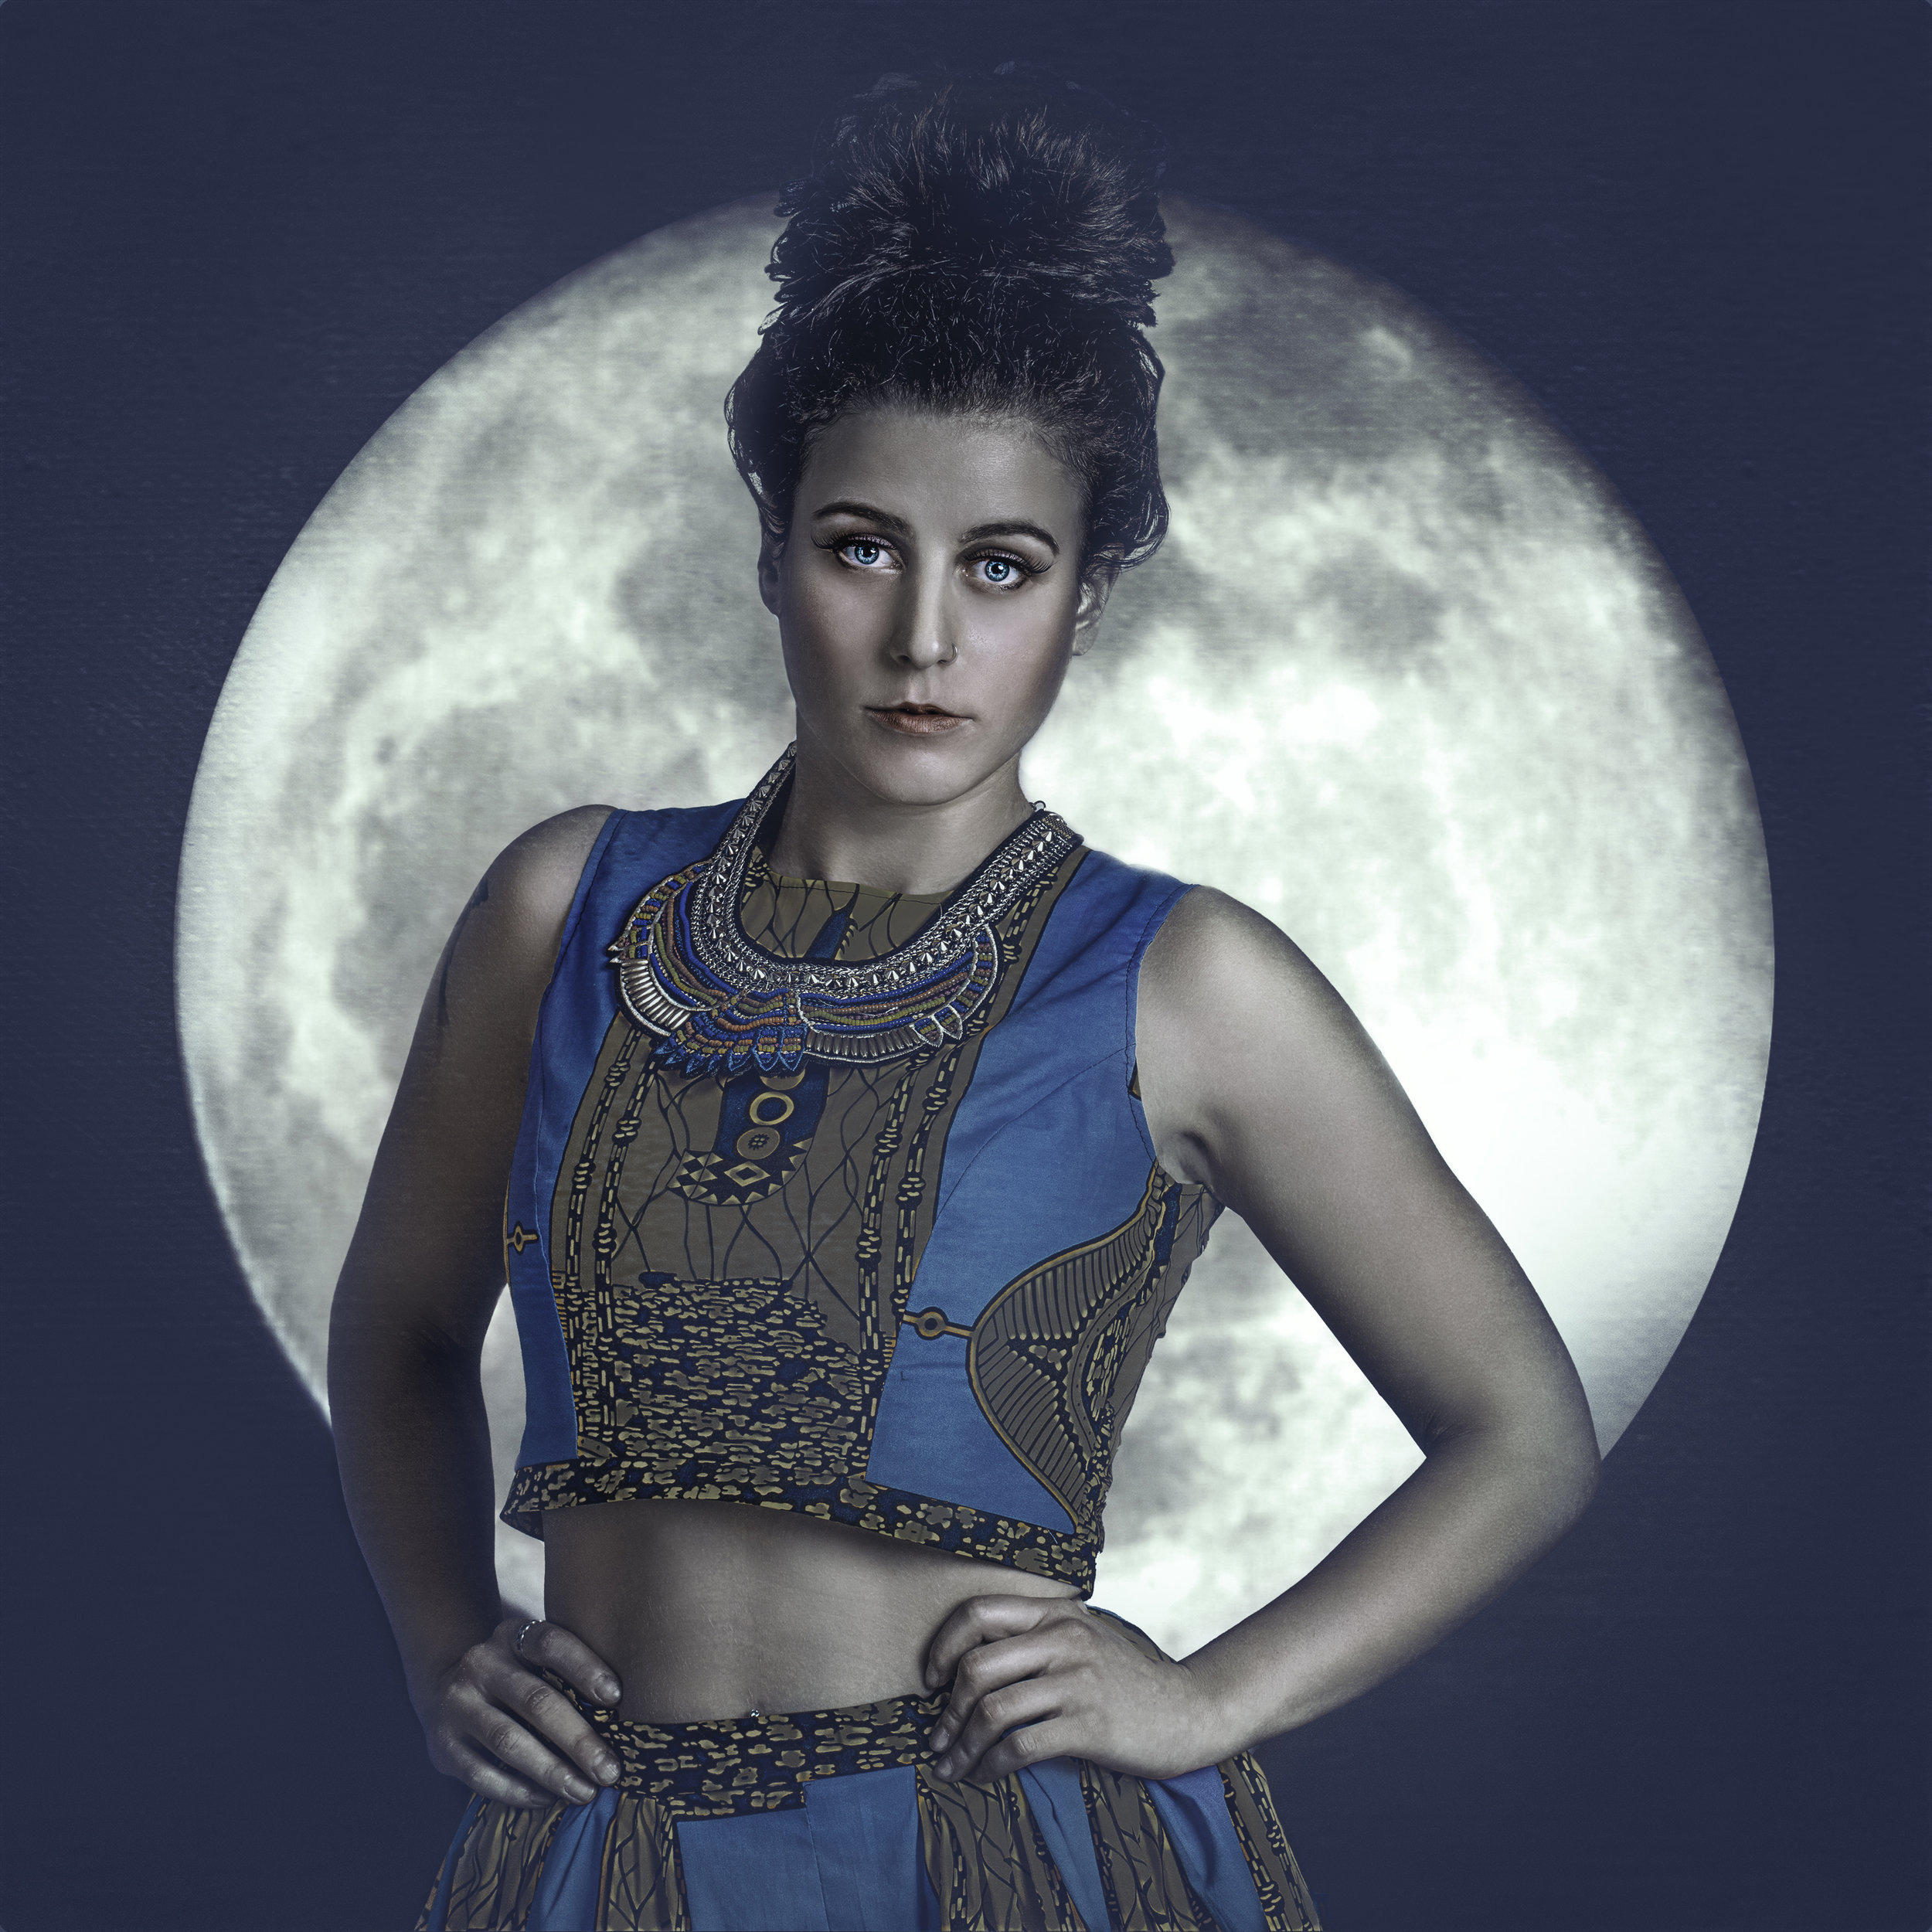 Aim For The Moon  Dinah Russo( @danger_dinah )